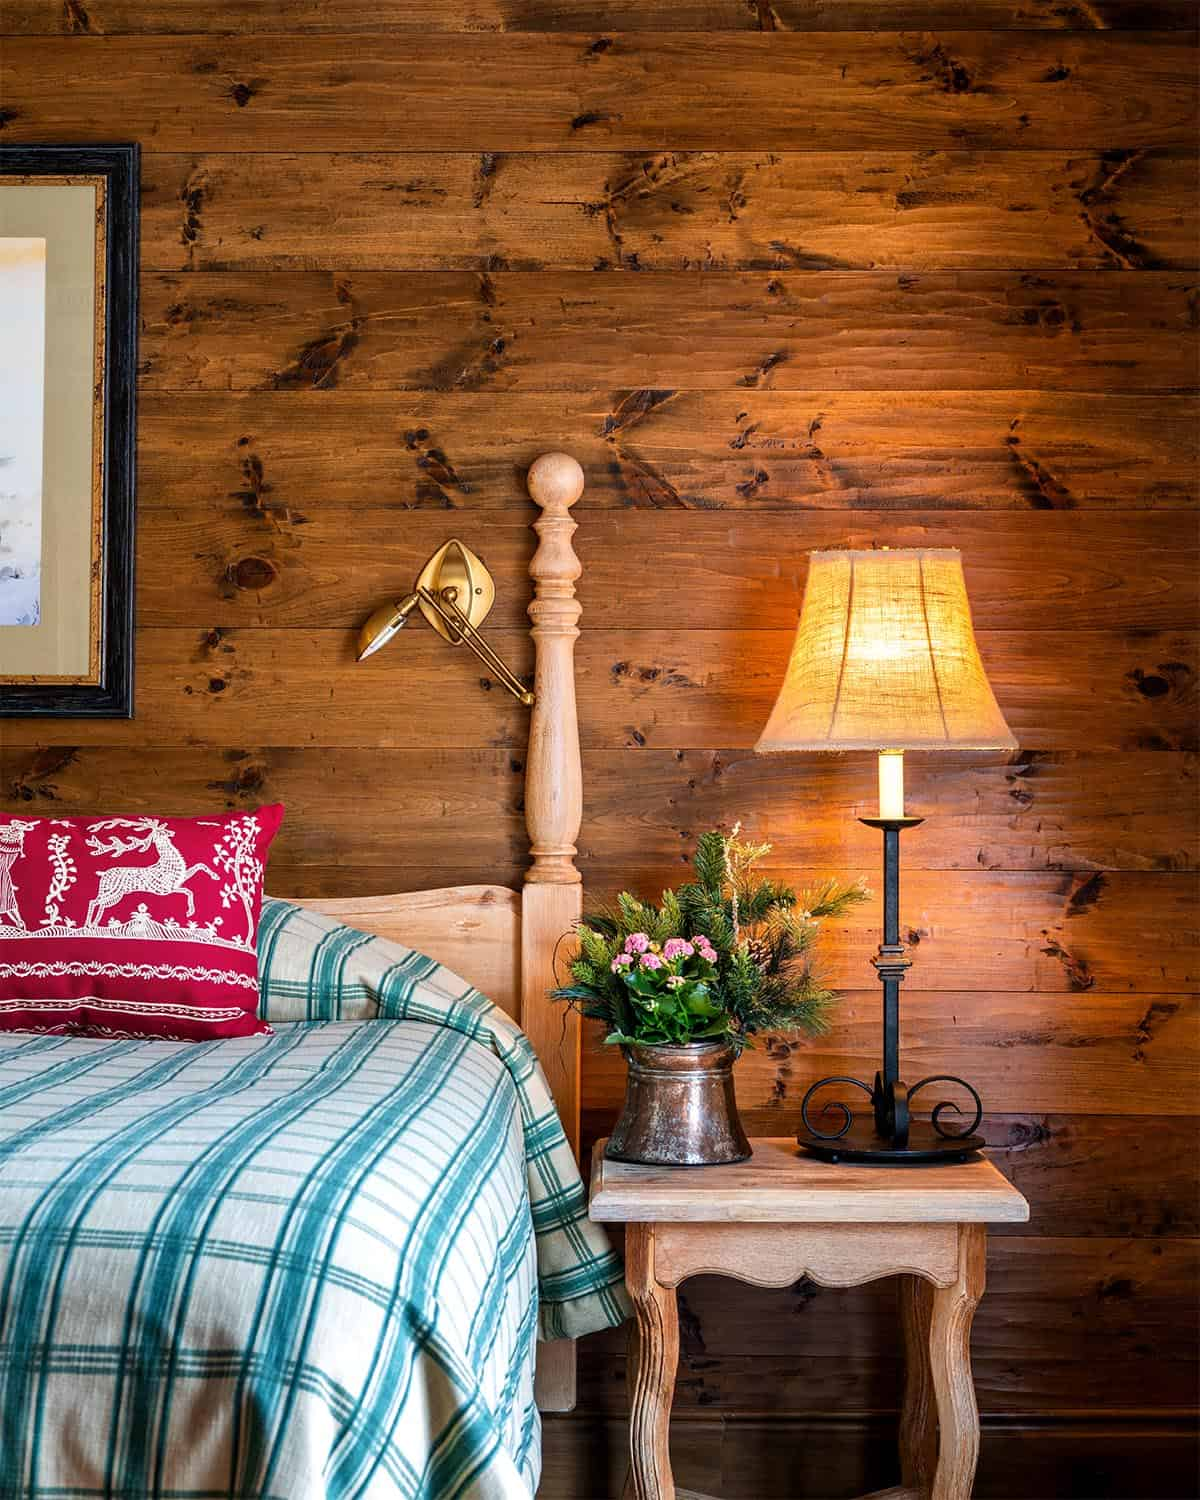 Hotel bed, nightstand with lamp, and wood-paneled wall